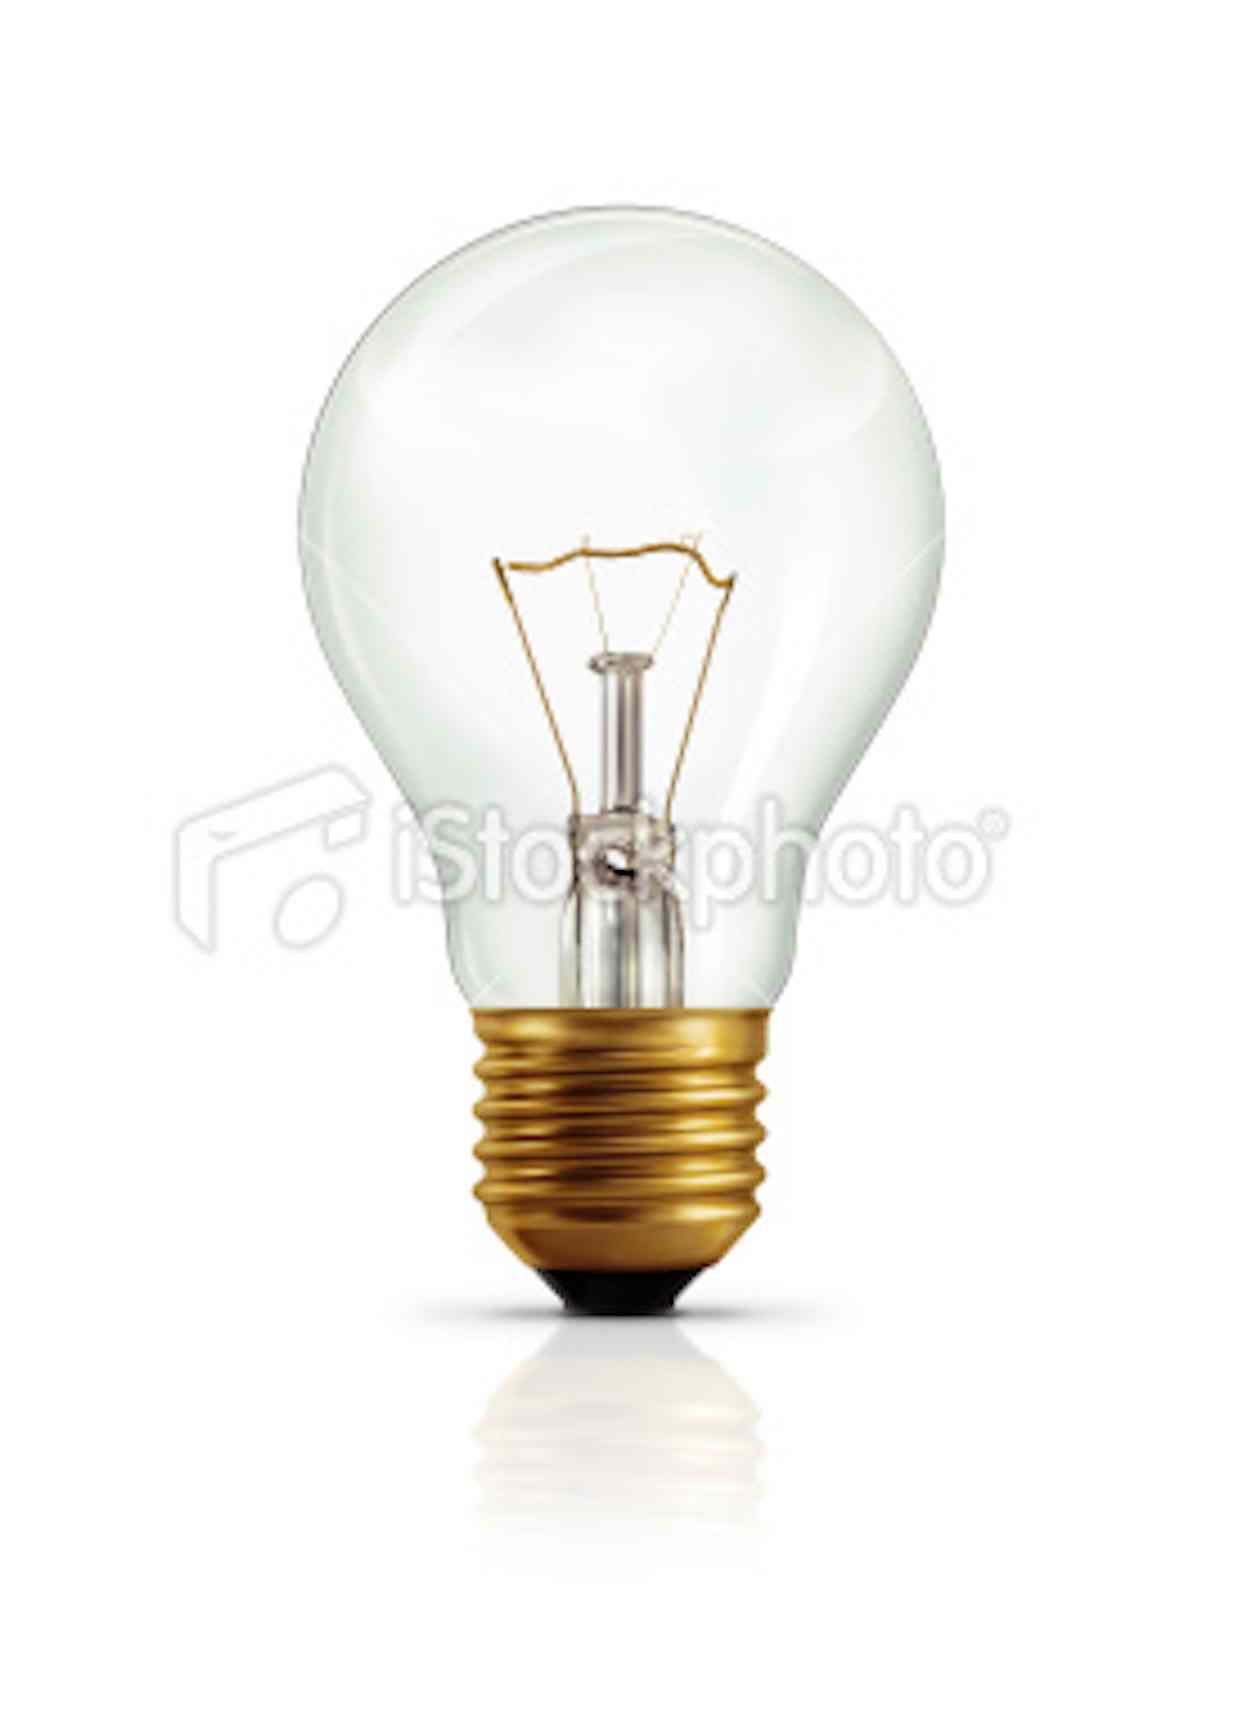 Incandescent Lamp Vs Fluorescent Lamp Incandescent Light Bulb